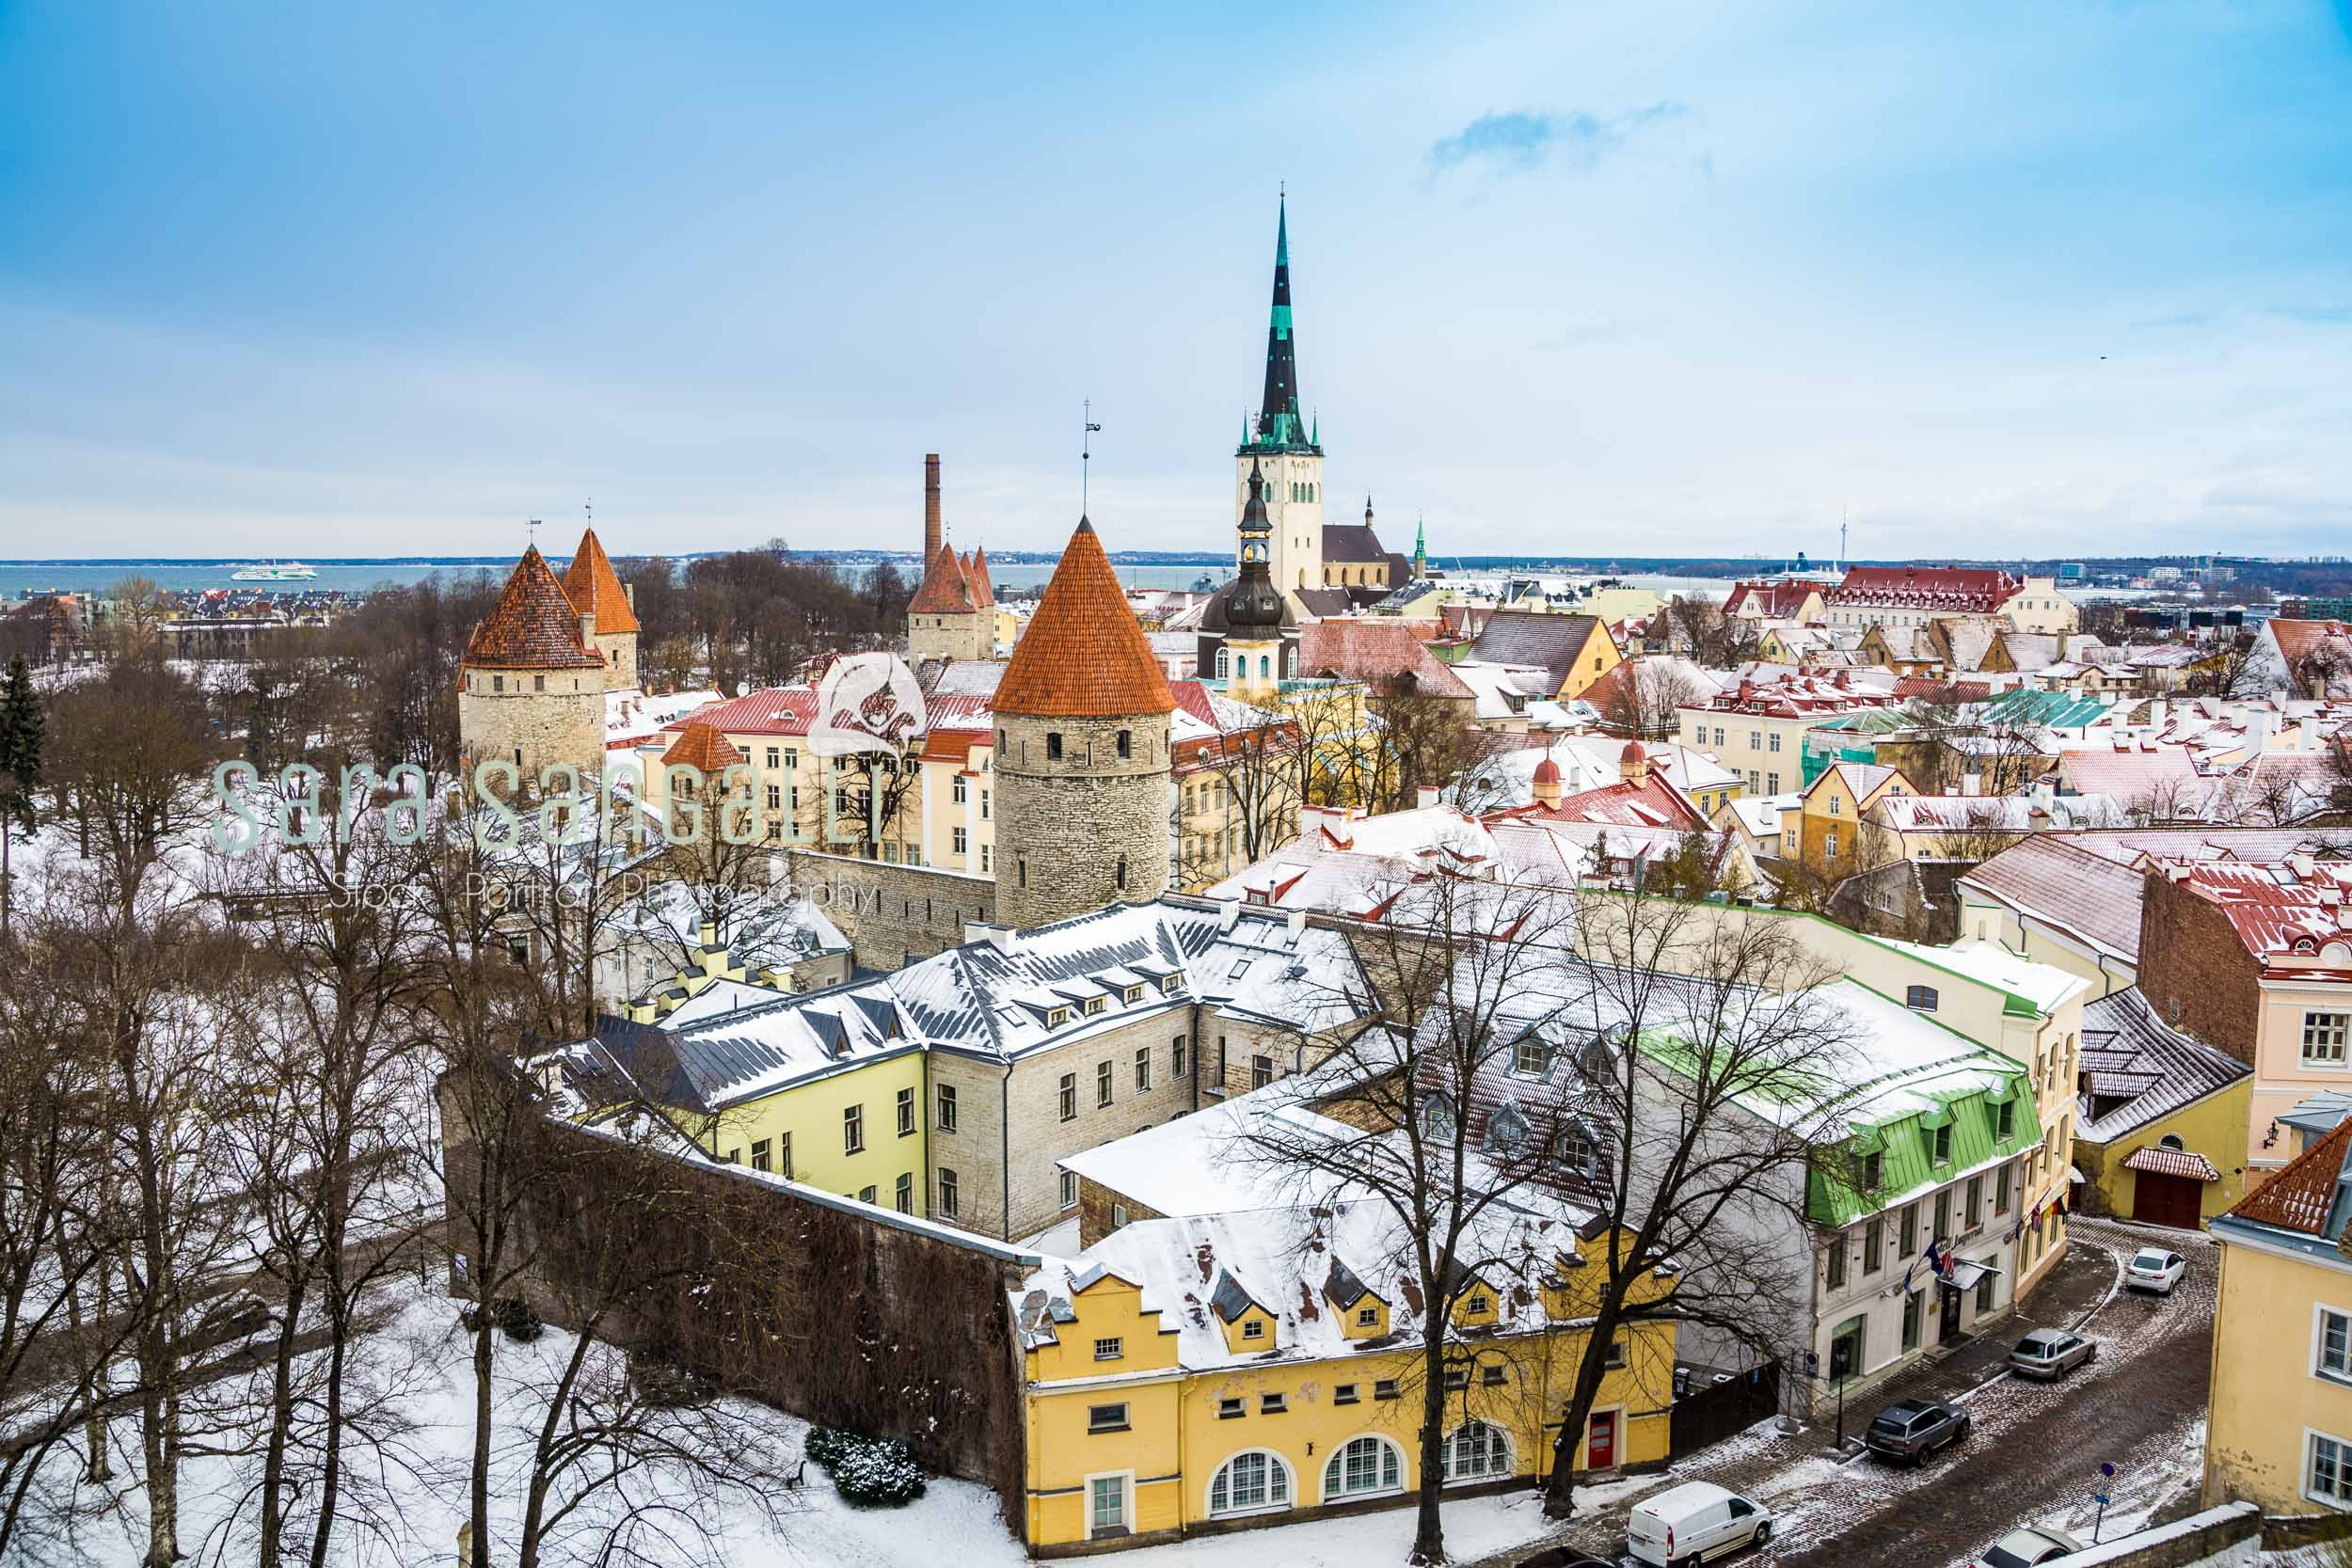 The snowy red roofs of Tallinn